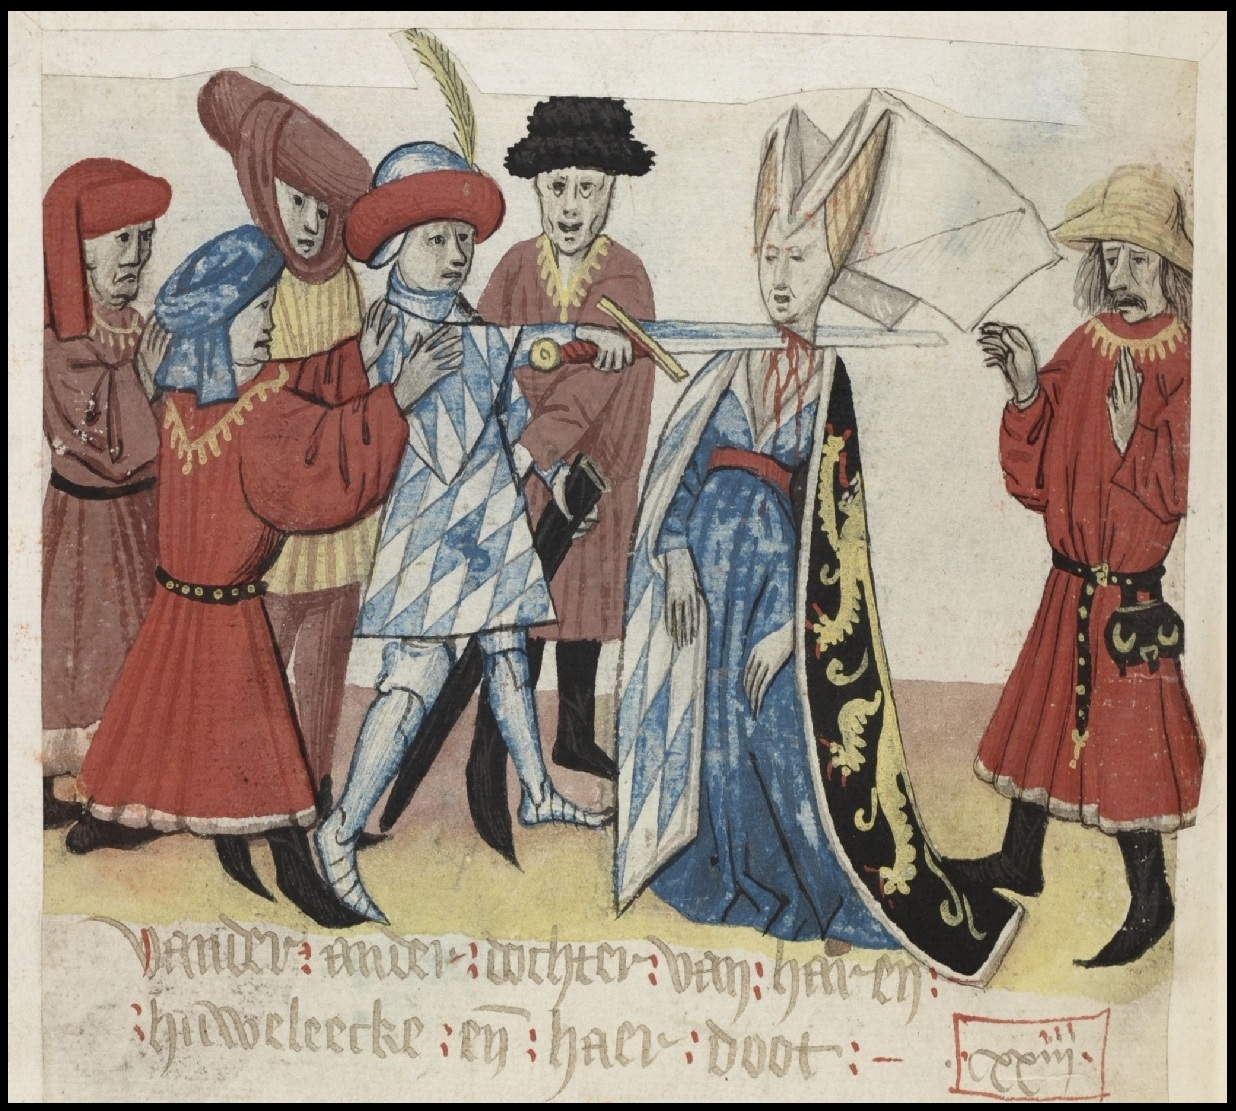 brabant chronicle illustration of duchess being beheaded in 14th century